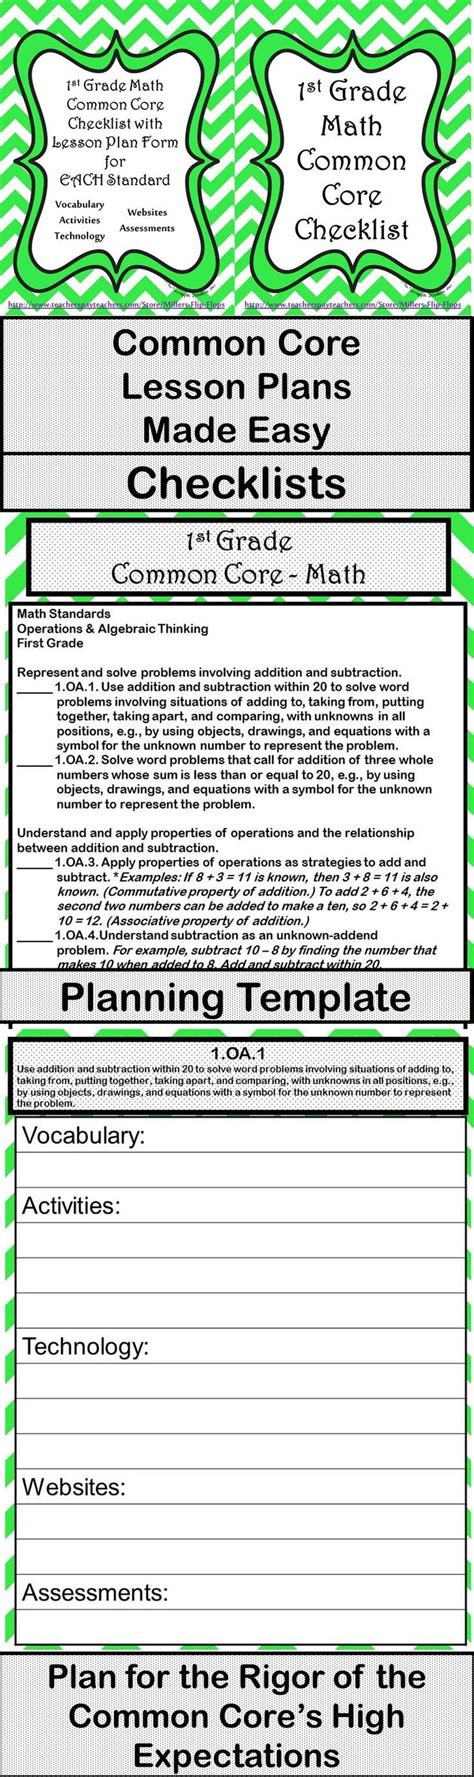 lesson plan template using common standards 1st grade math common checklist lesson planning form green chevron high expectations